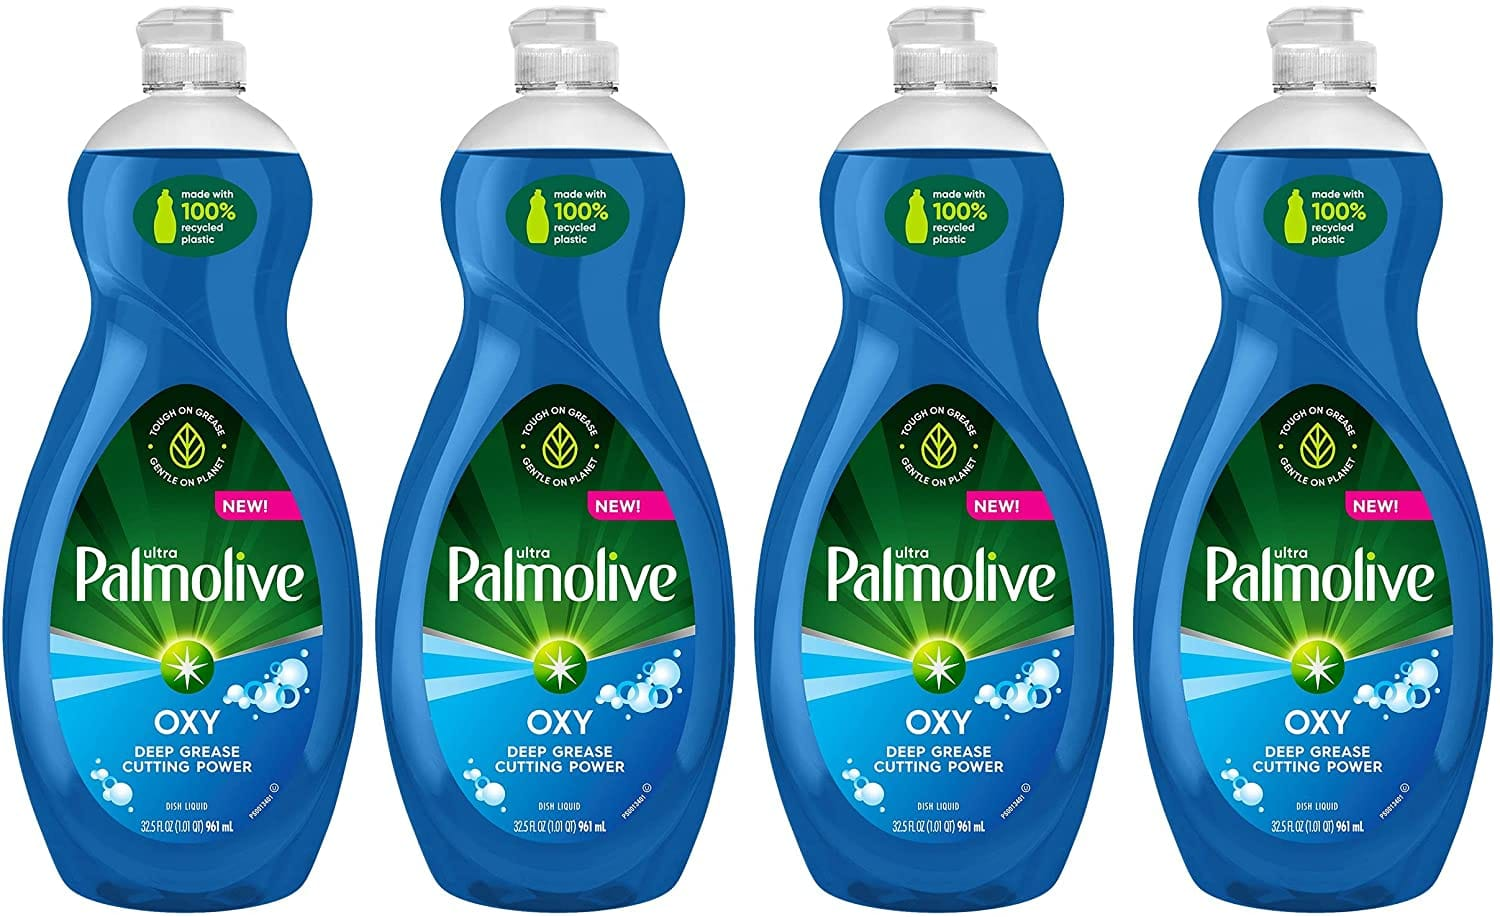 4-Pack 32.5-Oz Palmolive Ultra Dish Soap (Oxy Power Degreaser) $7.77 w/ S&S + Free Shipping w/ Prime or $25+